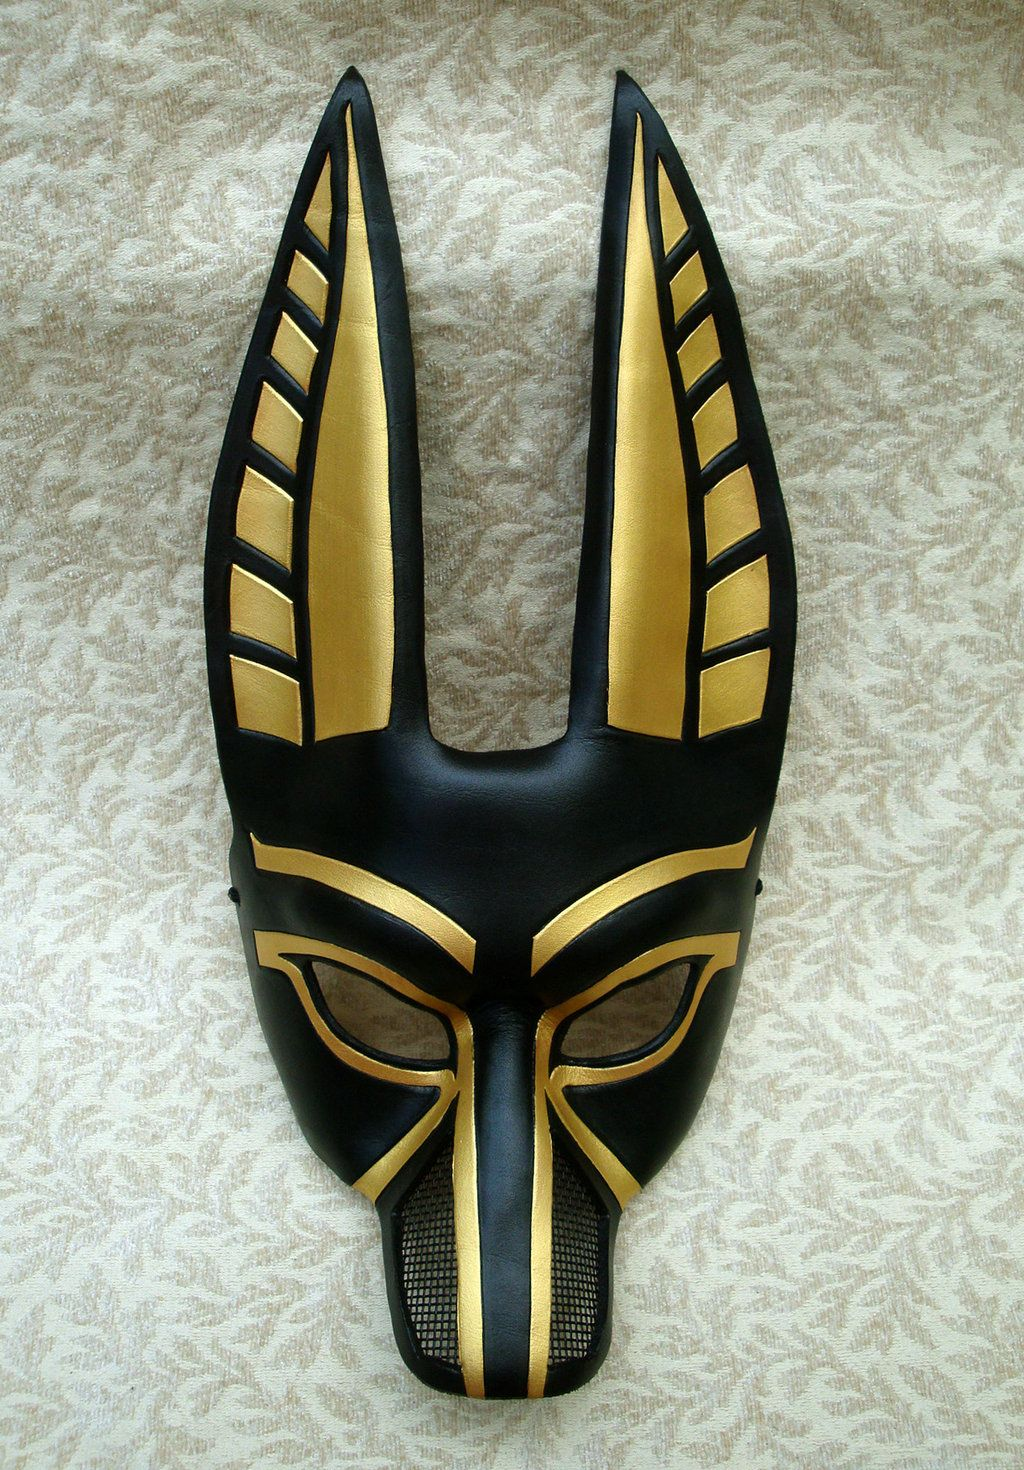 anubis mask for opera by merimaskdeviantartcom must recreate for steamcon